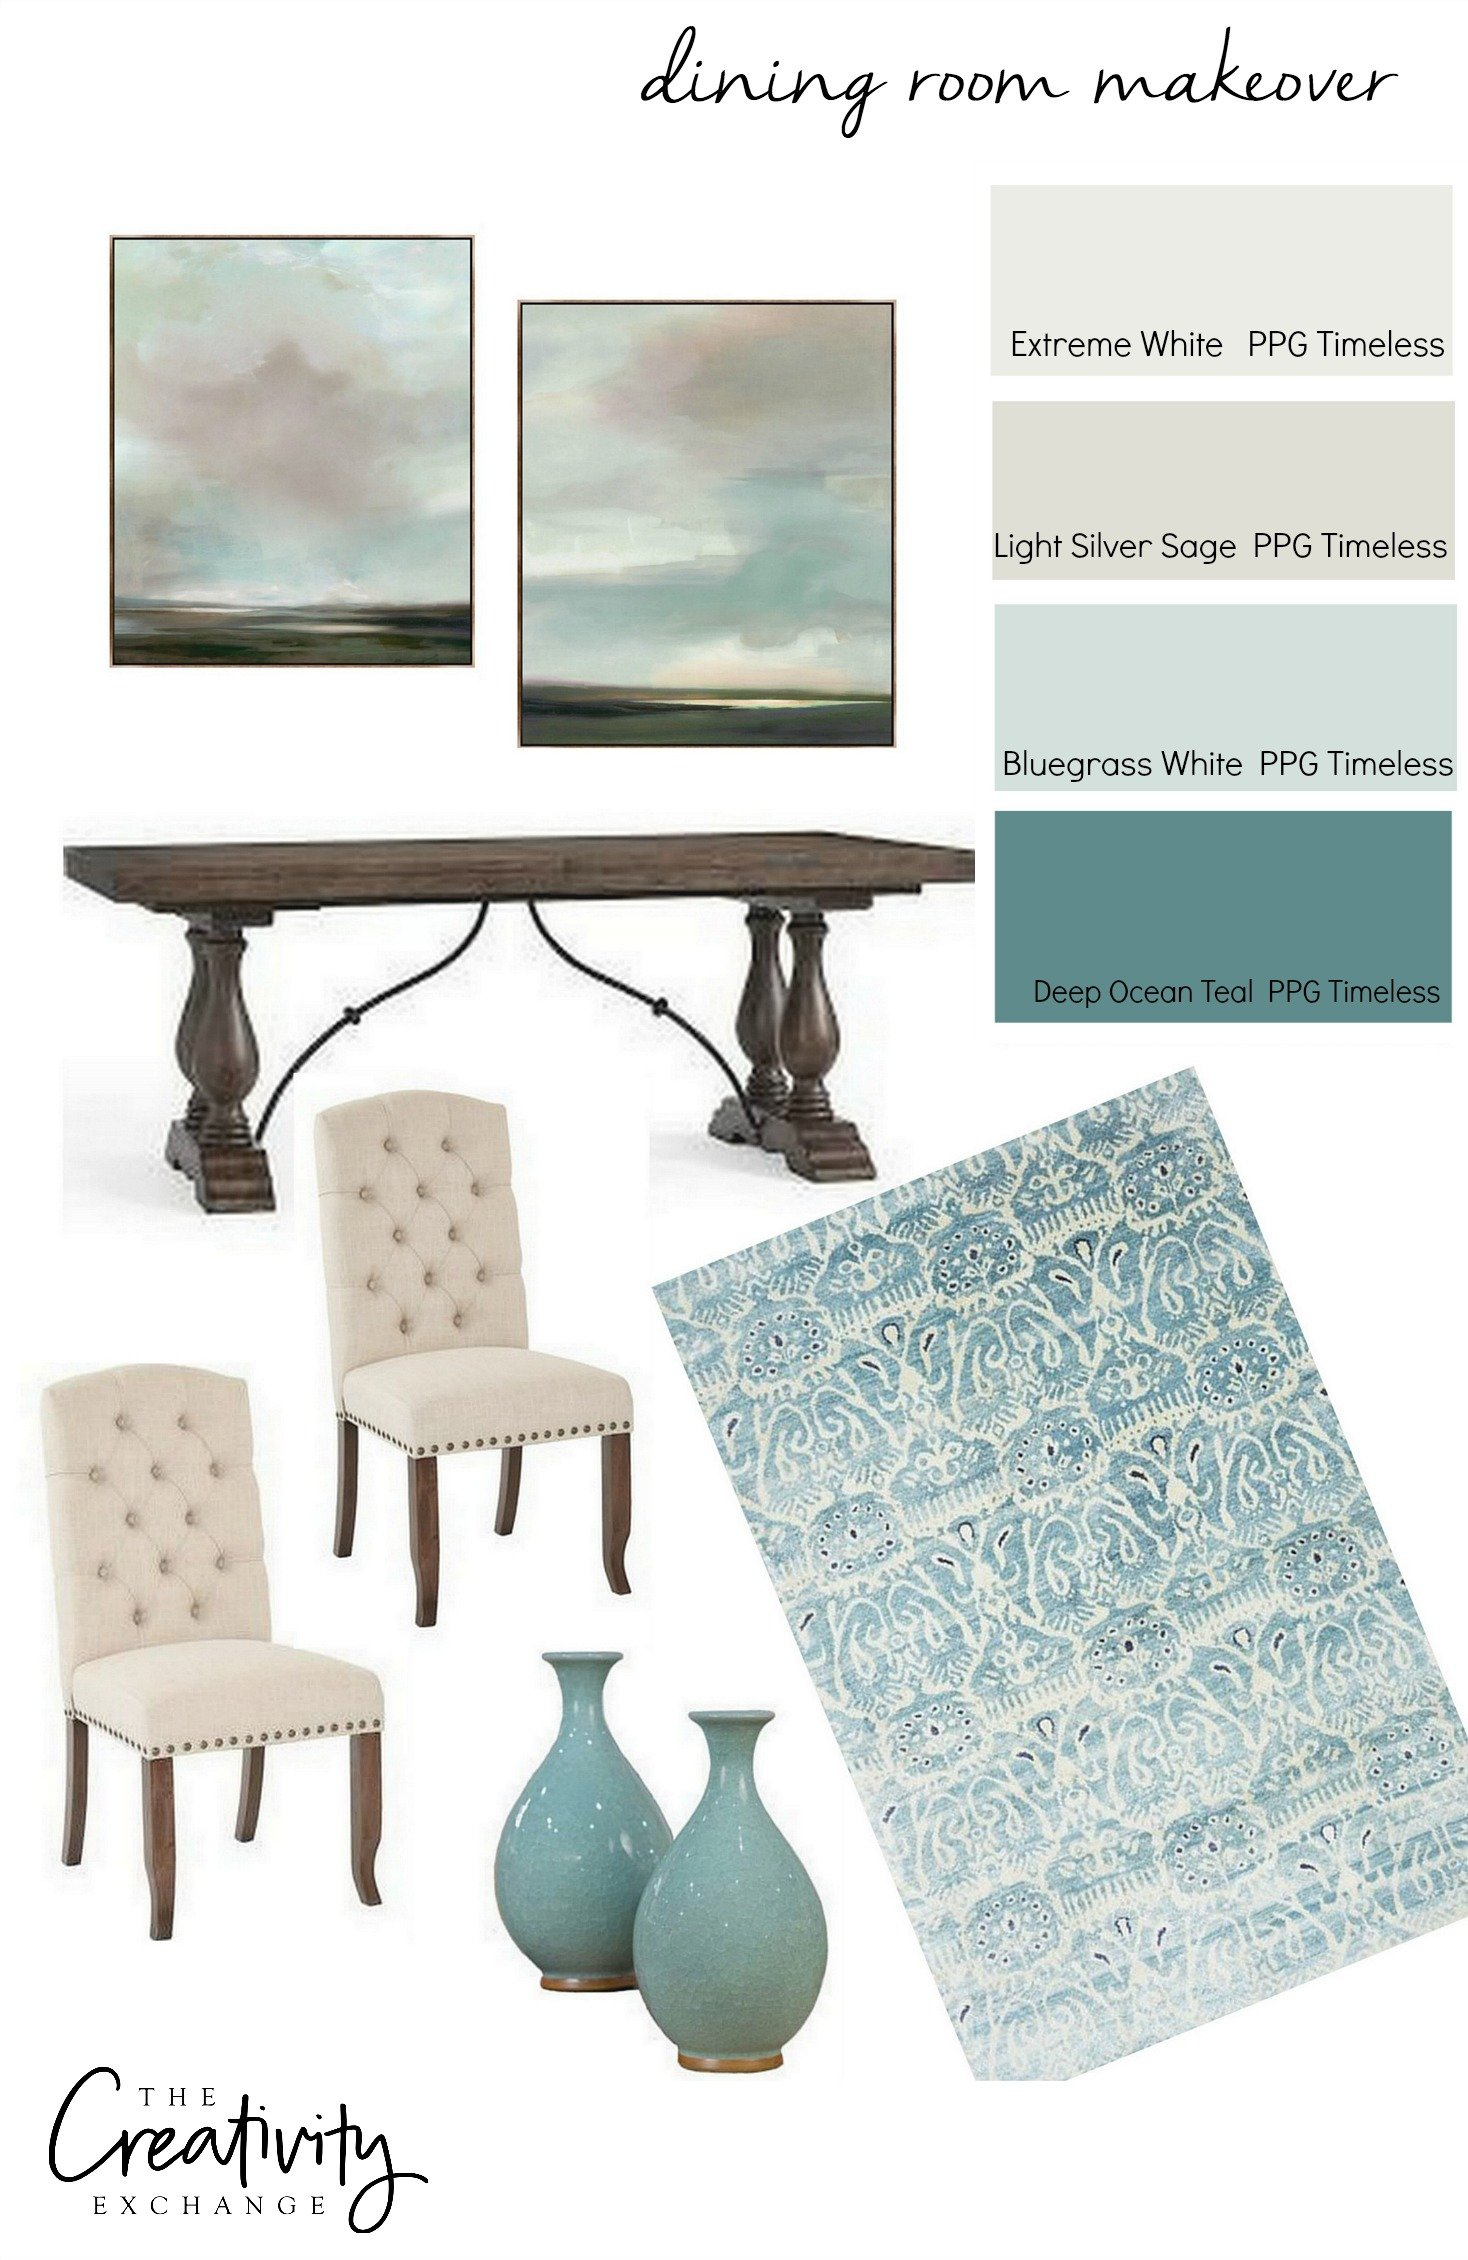 Dining room makeover design board.